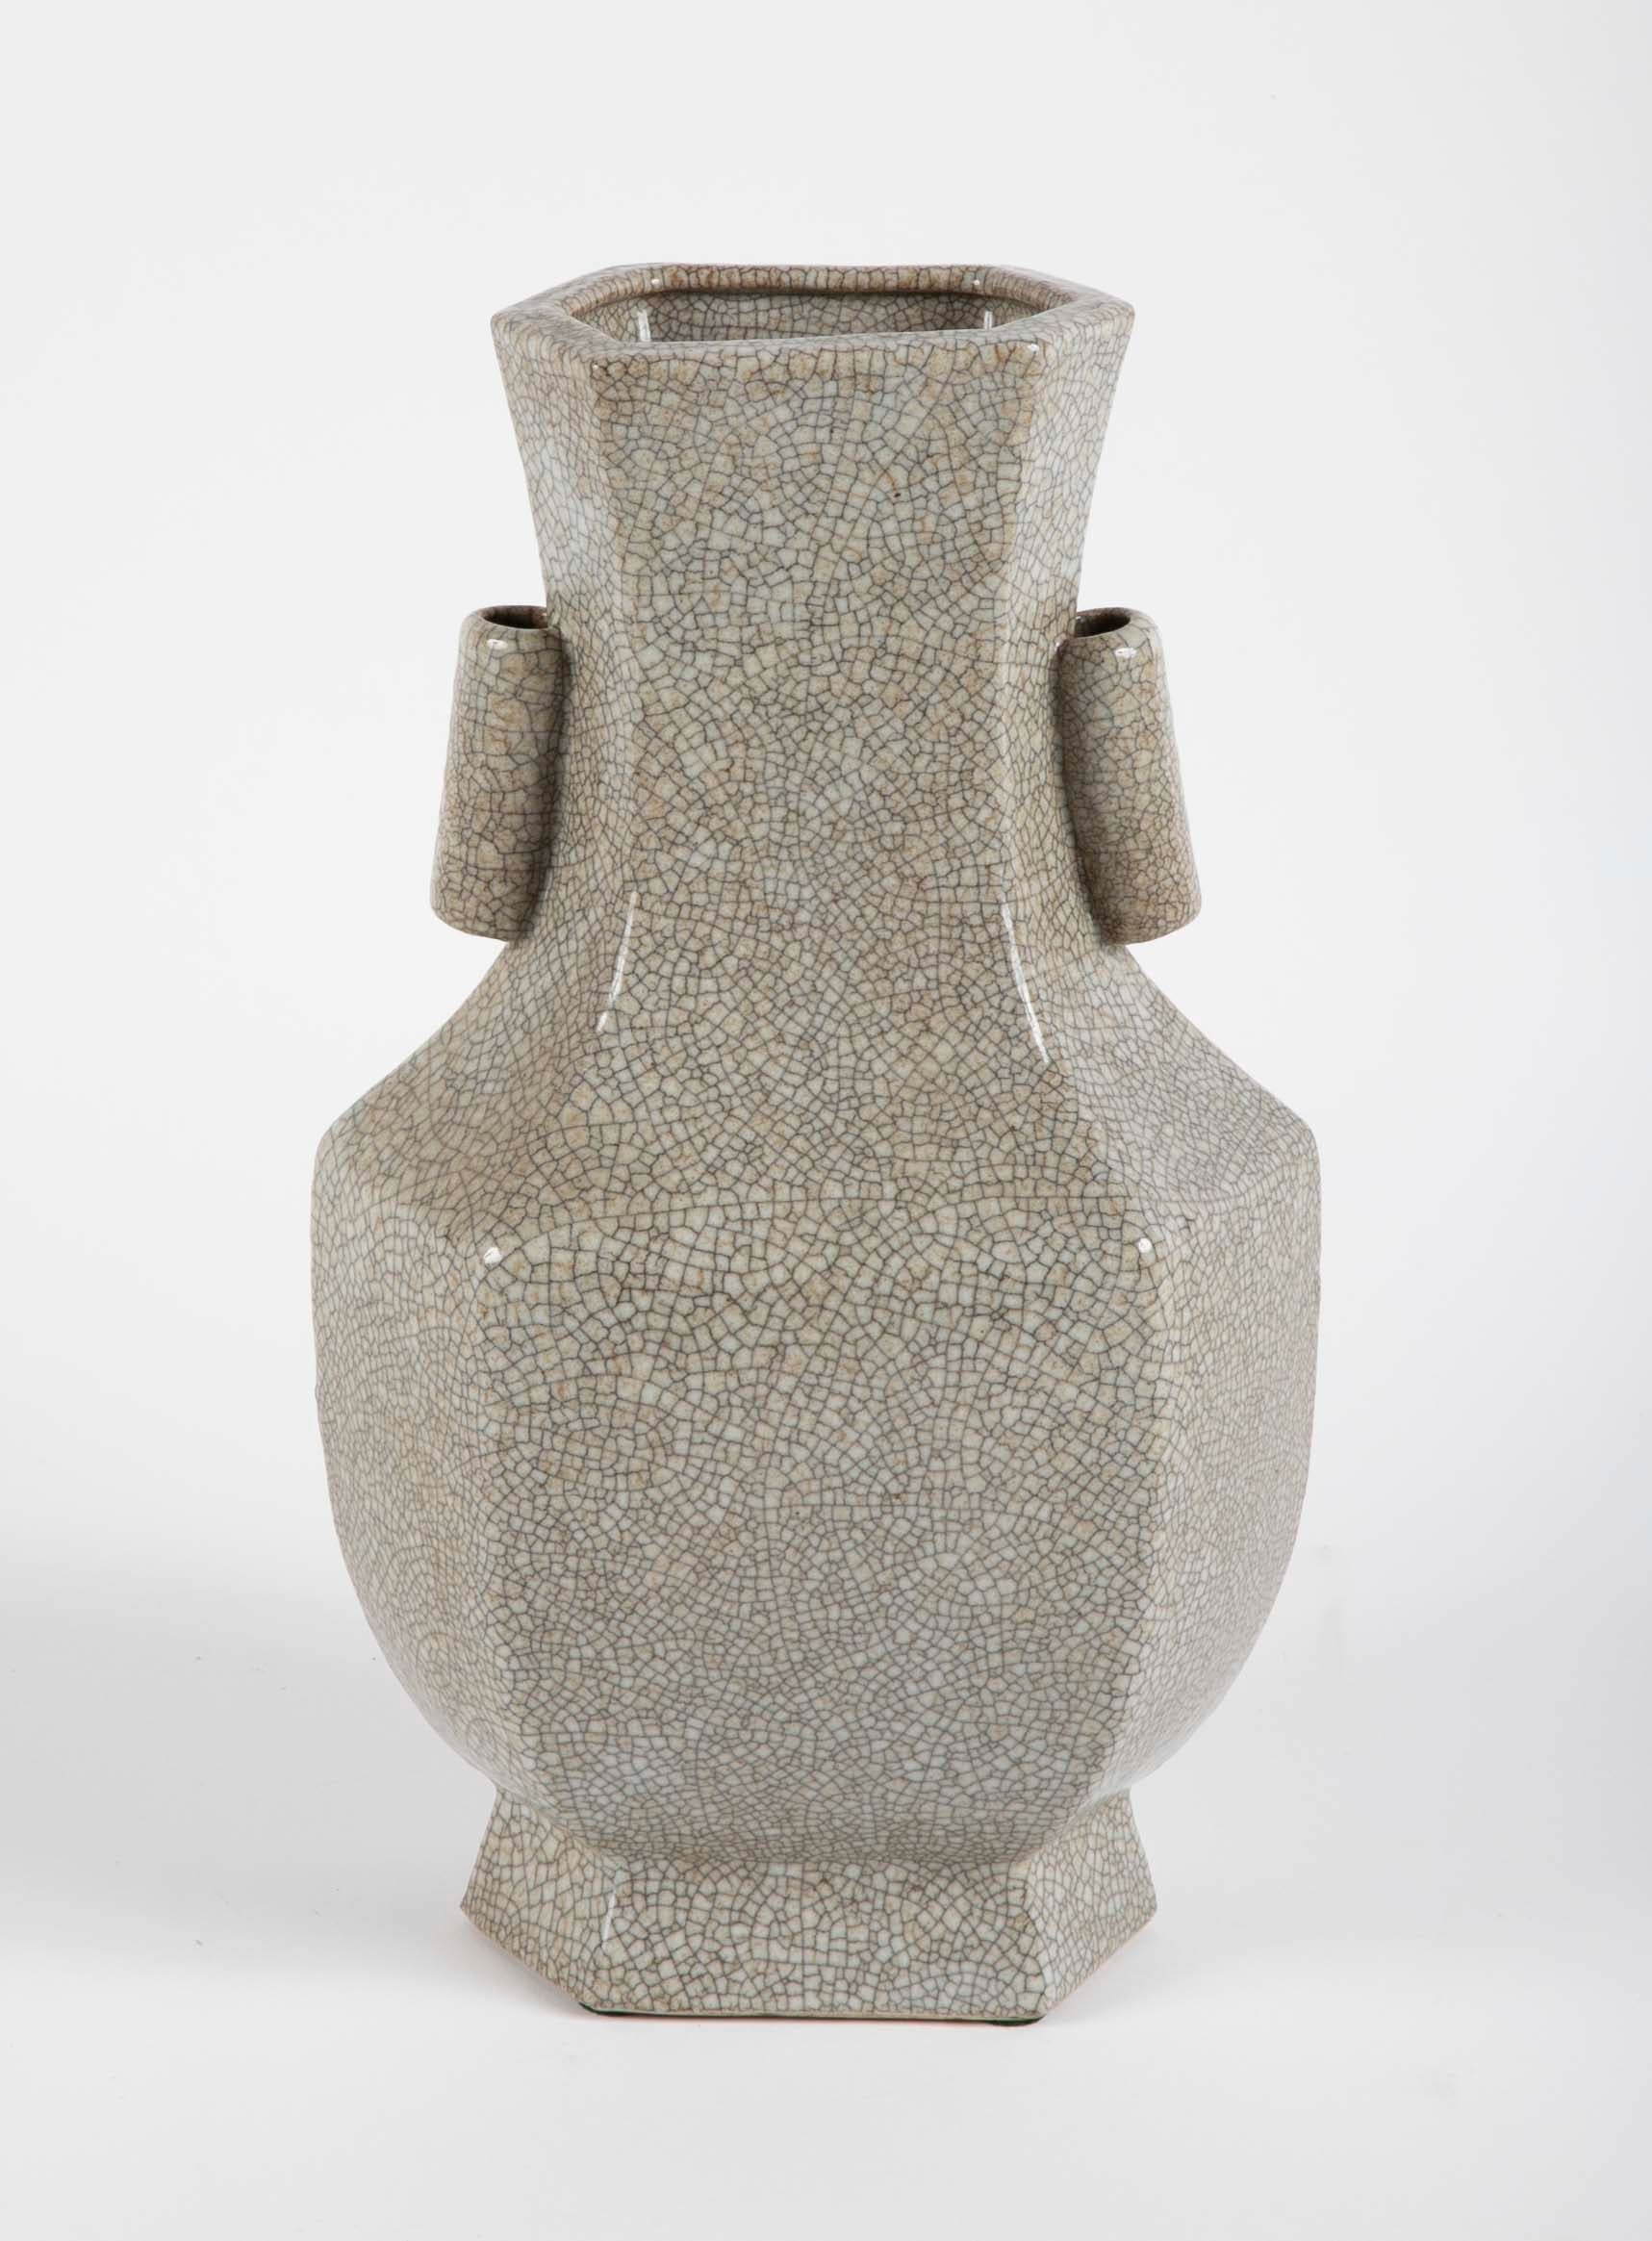 Late Qing Dynasty Gu Form Vase